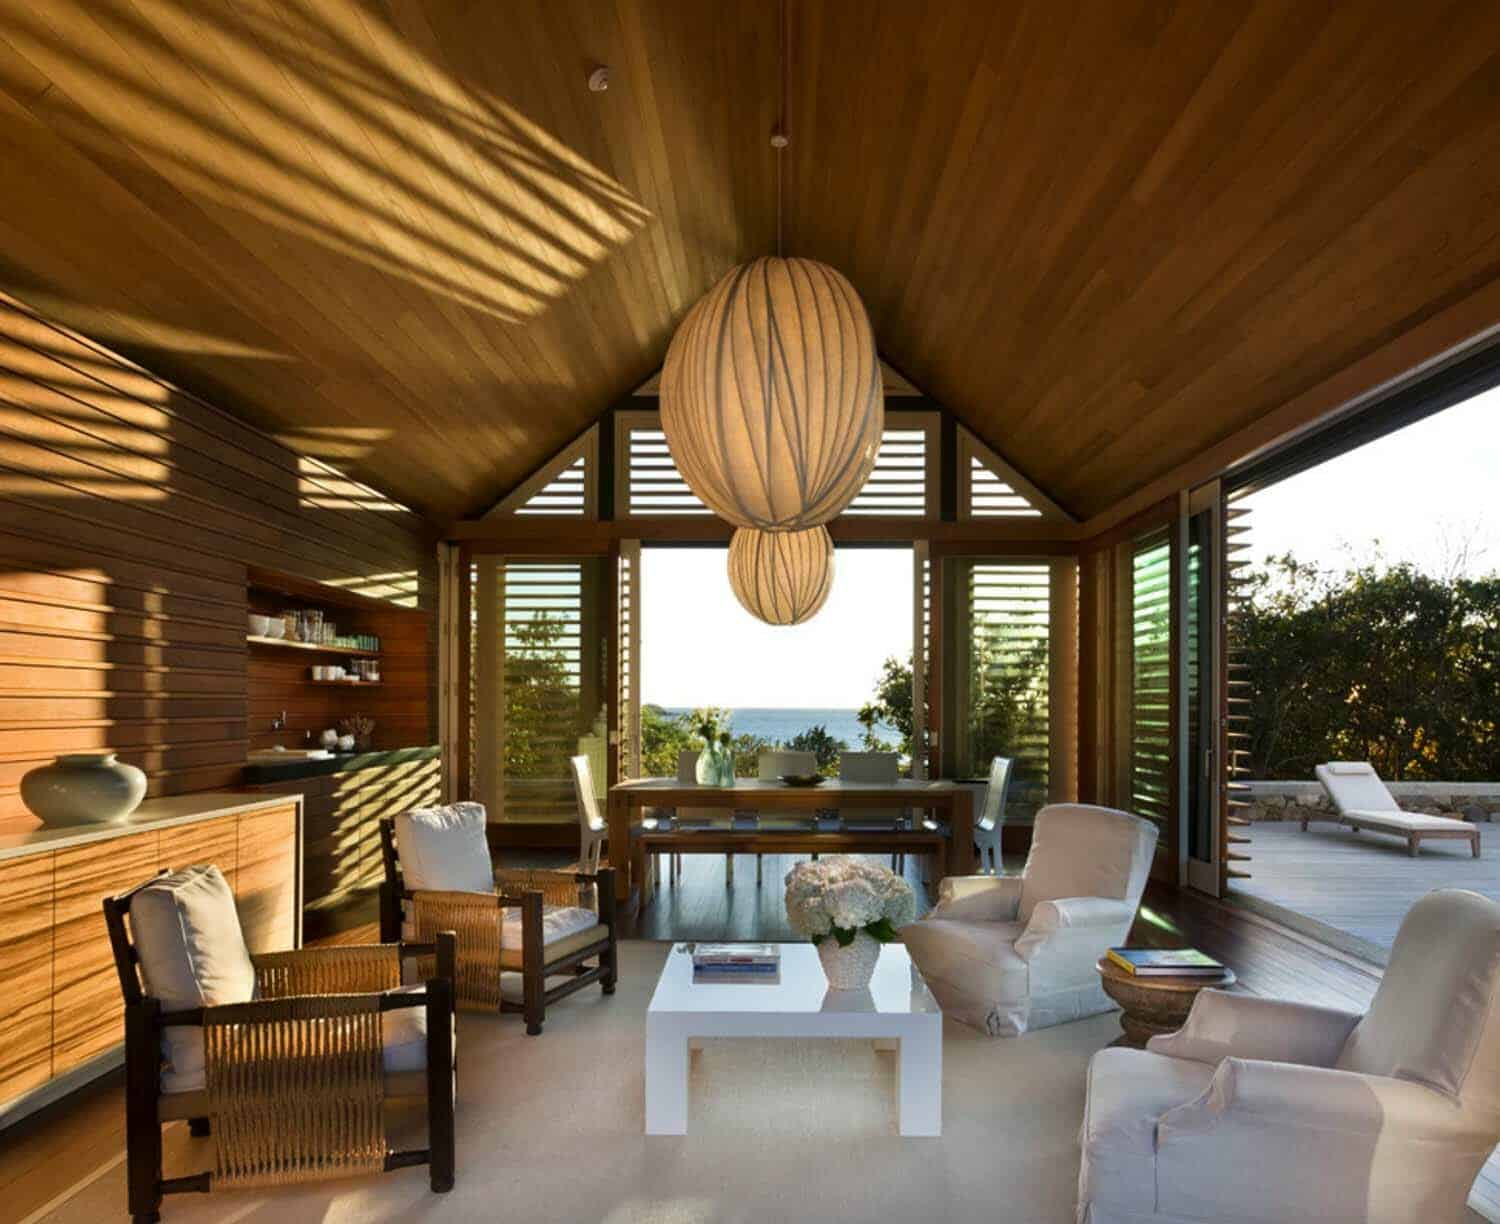 beach-style-poolhouse-interior